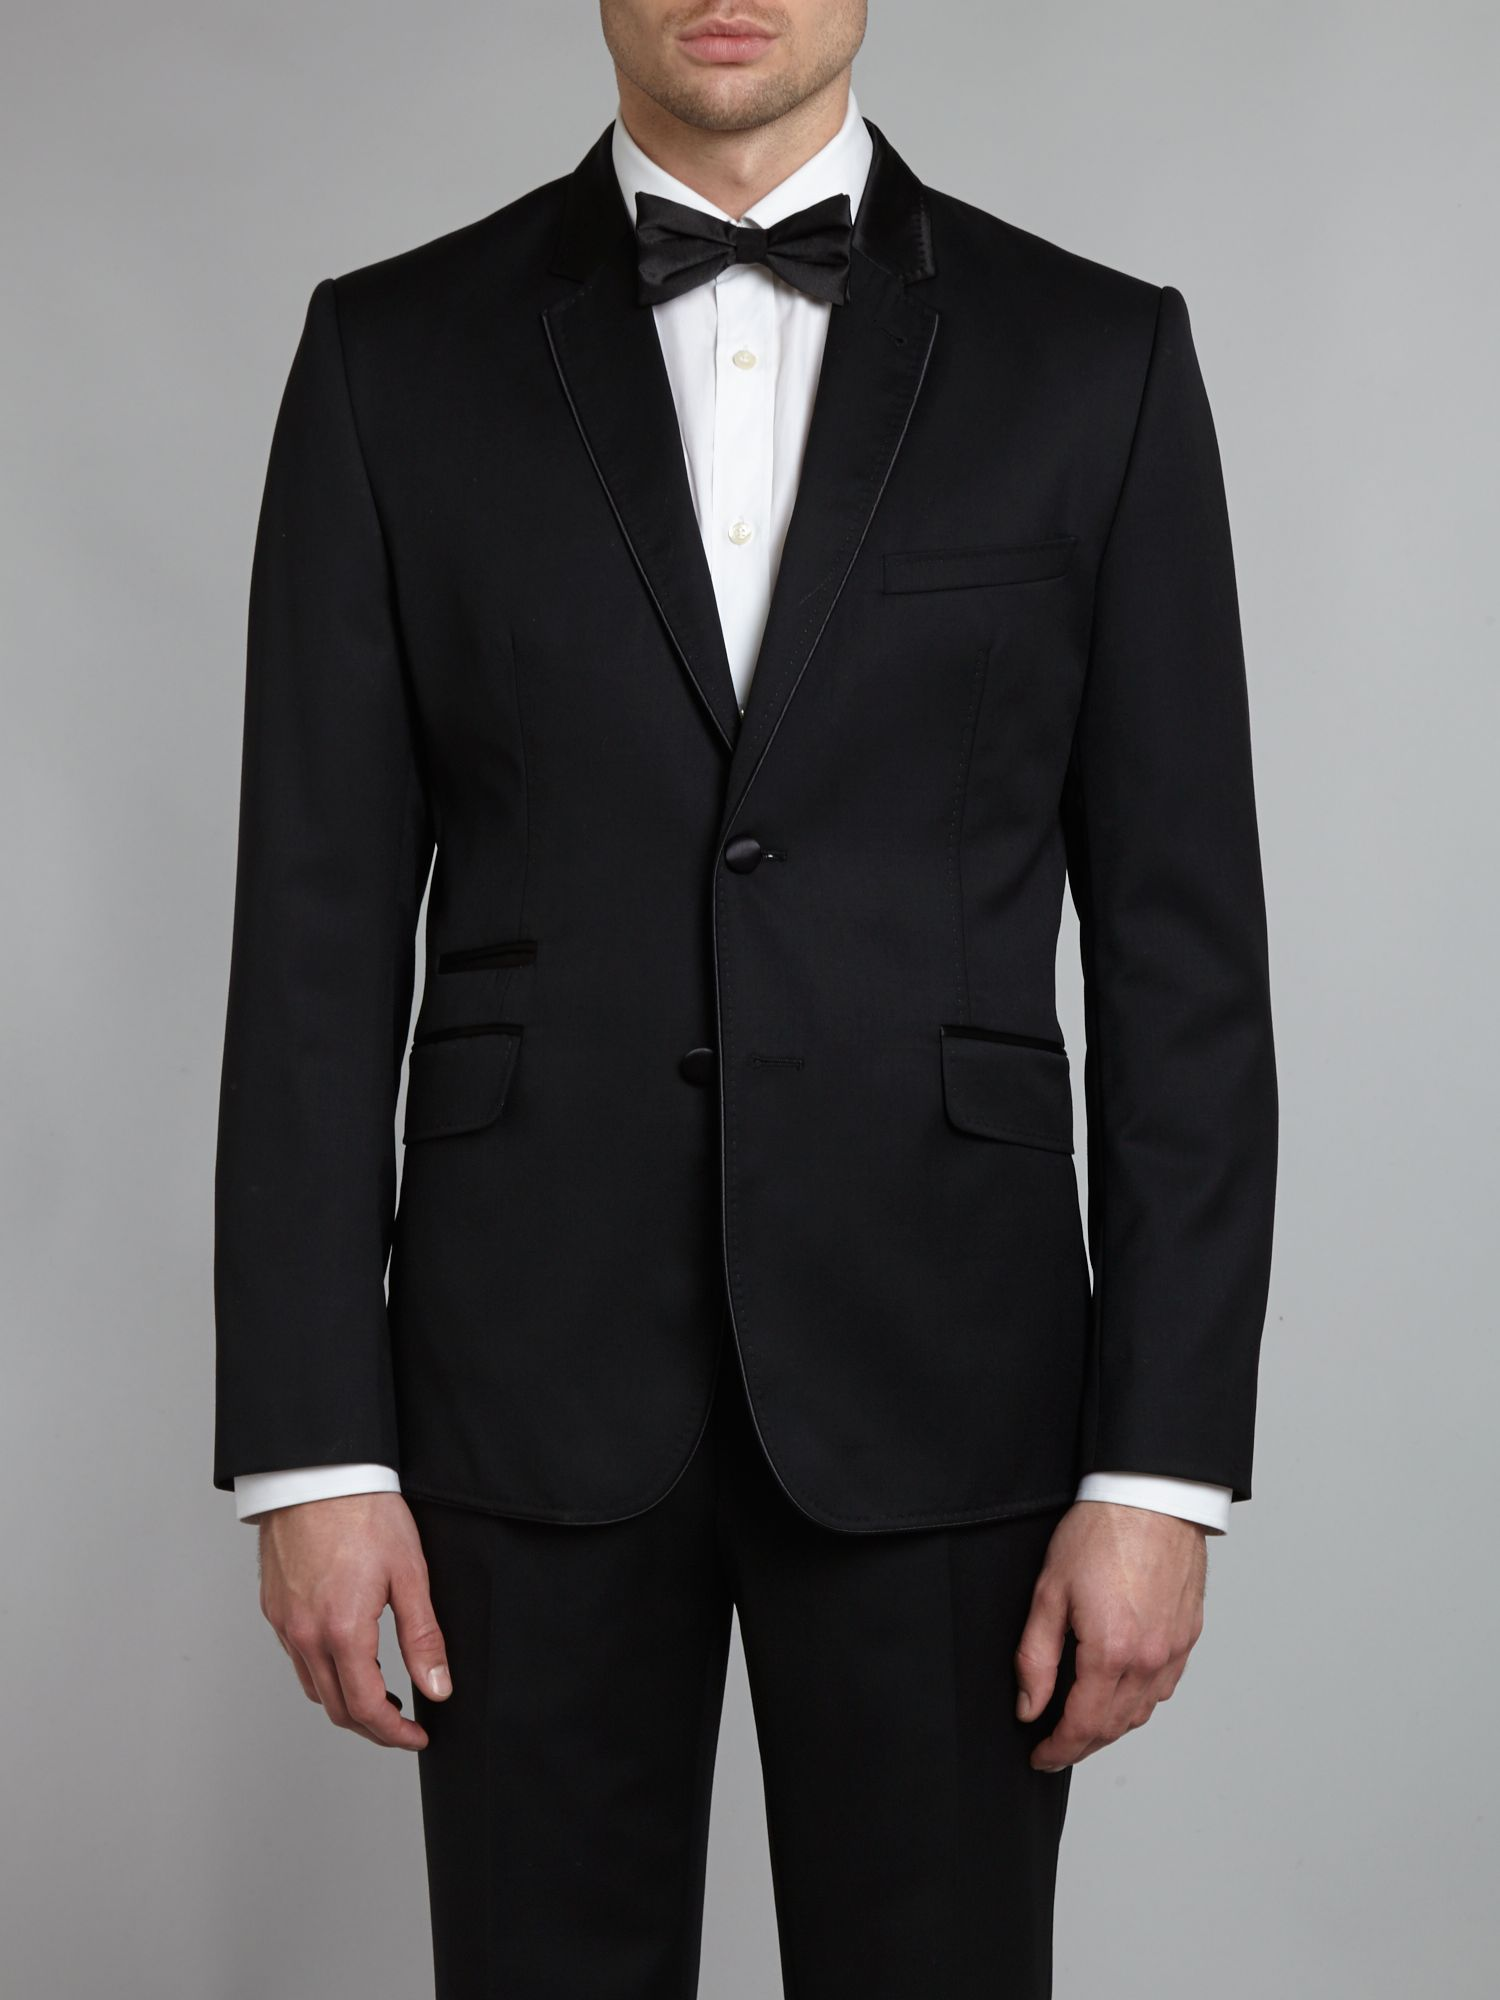 Owlz extra slim piped tuxedo jacket